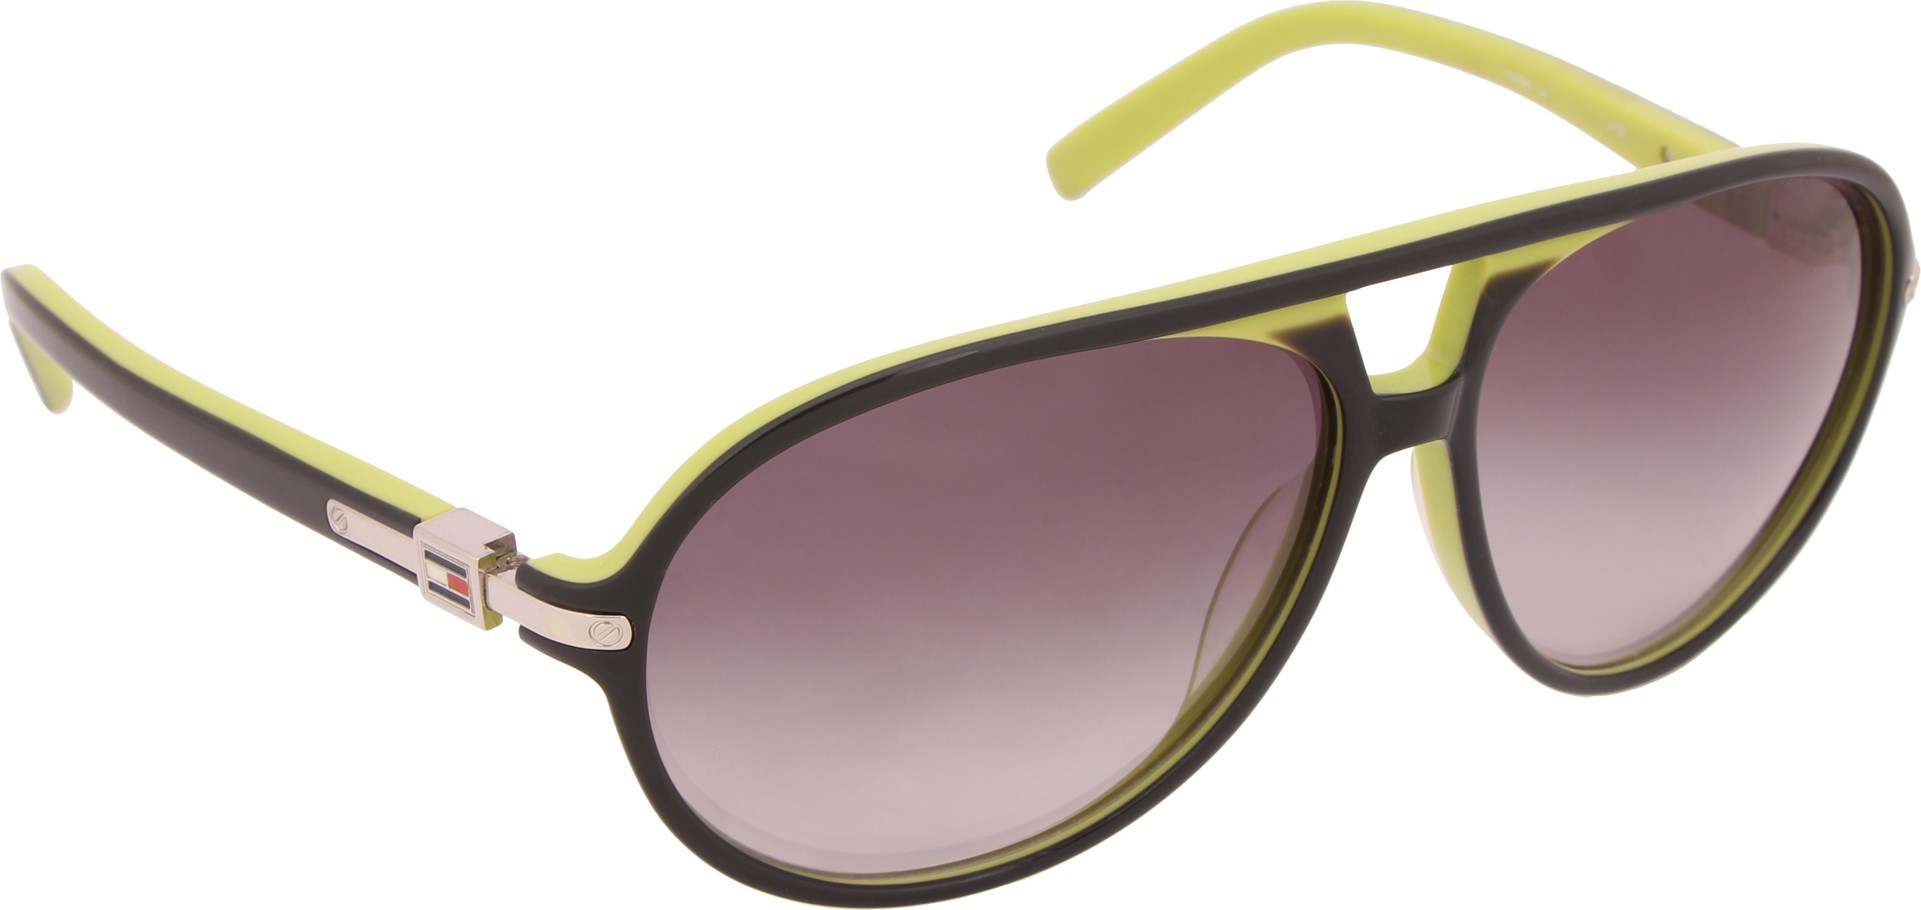 Deals - Delhi - IDEE, Image & more <br> Sunglasses<br> Category - sunglasses<br> Business - Flipkart.com